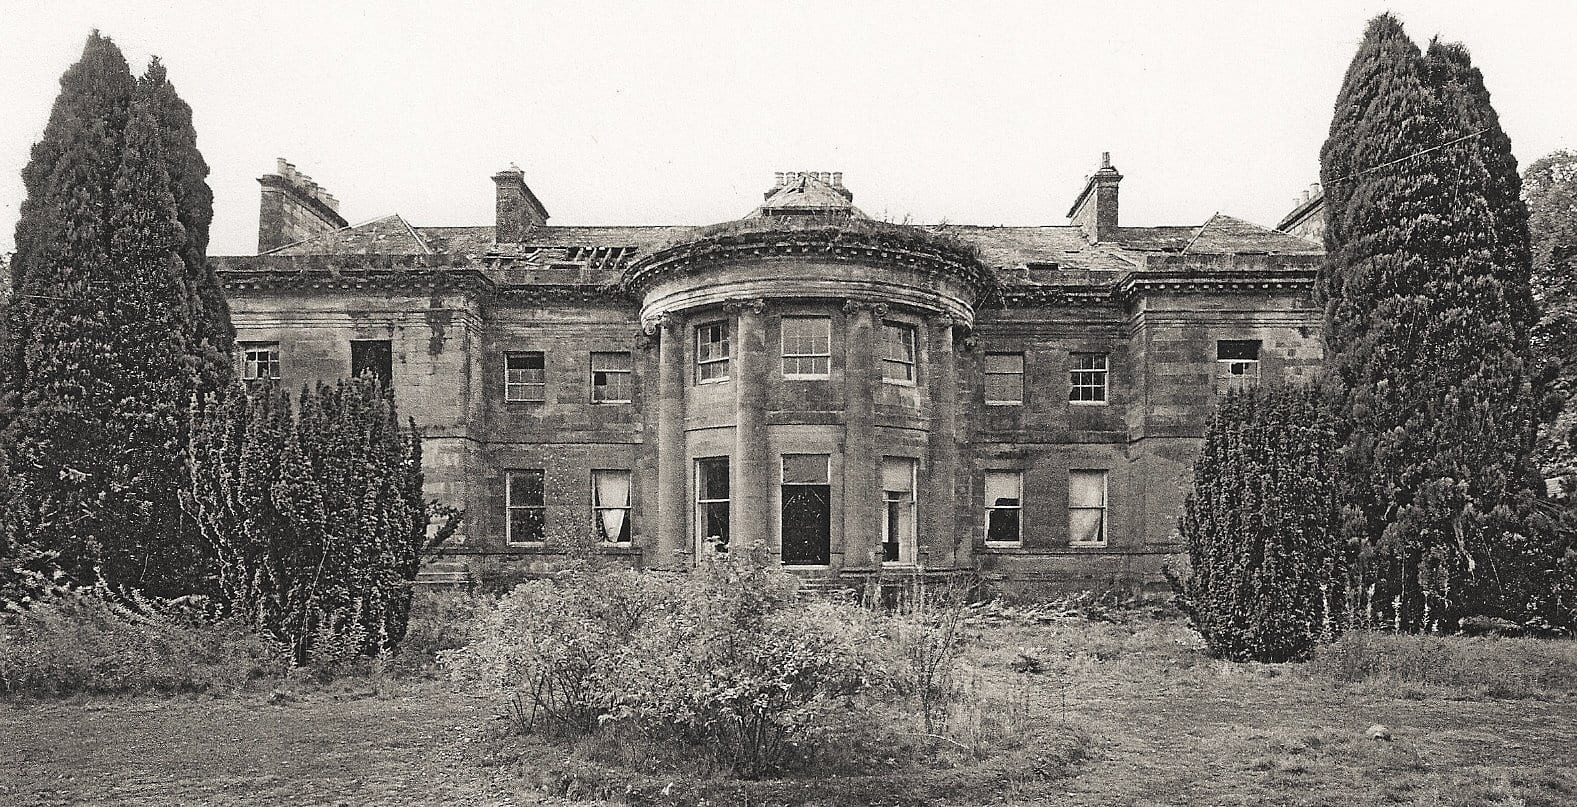 Lees House in a  poor state